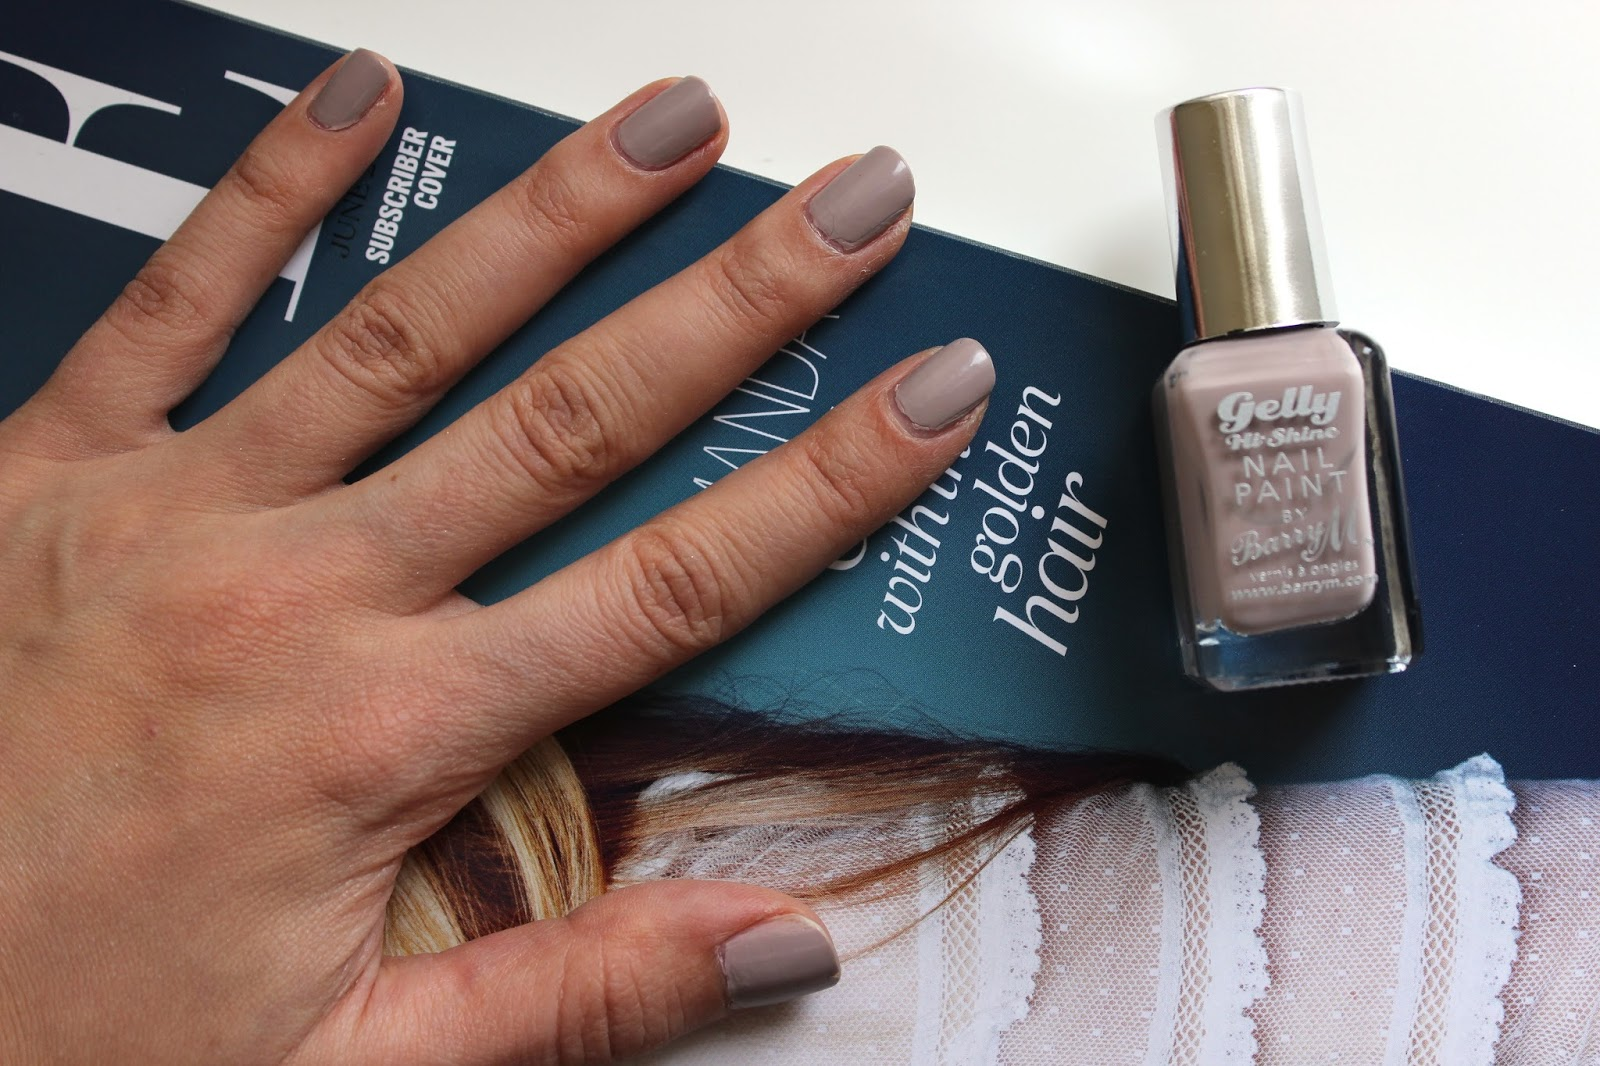 BARRY M GELLY SUMMER SHADES – Lily Pebbles